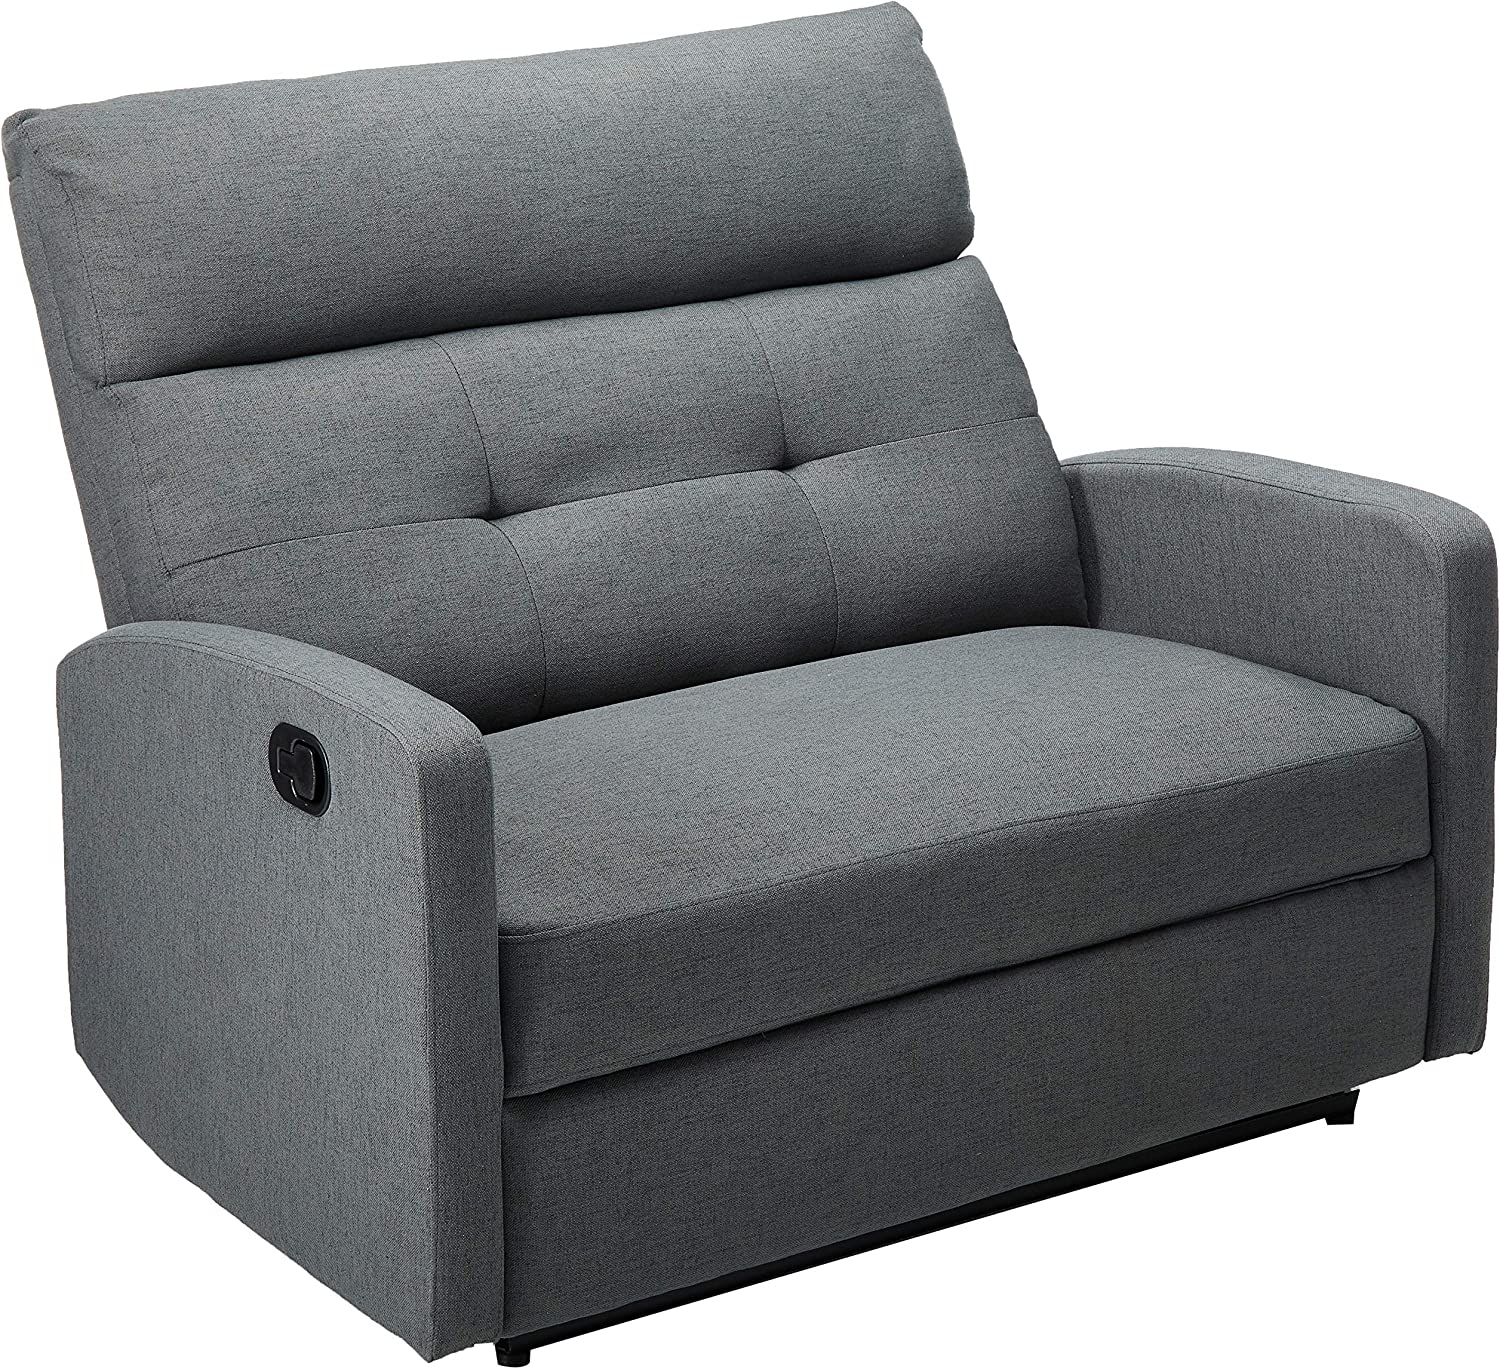 Christopher Knight Home Halima Fabric Recliner Chair